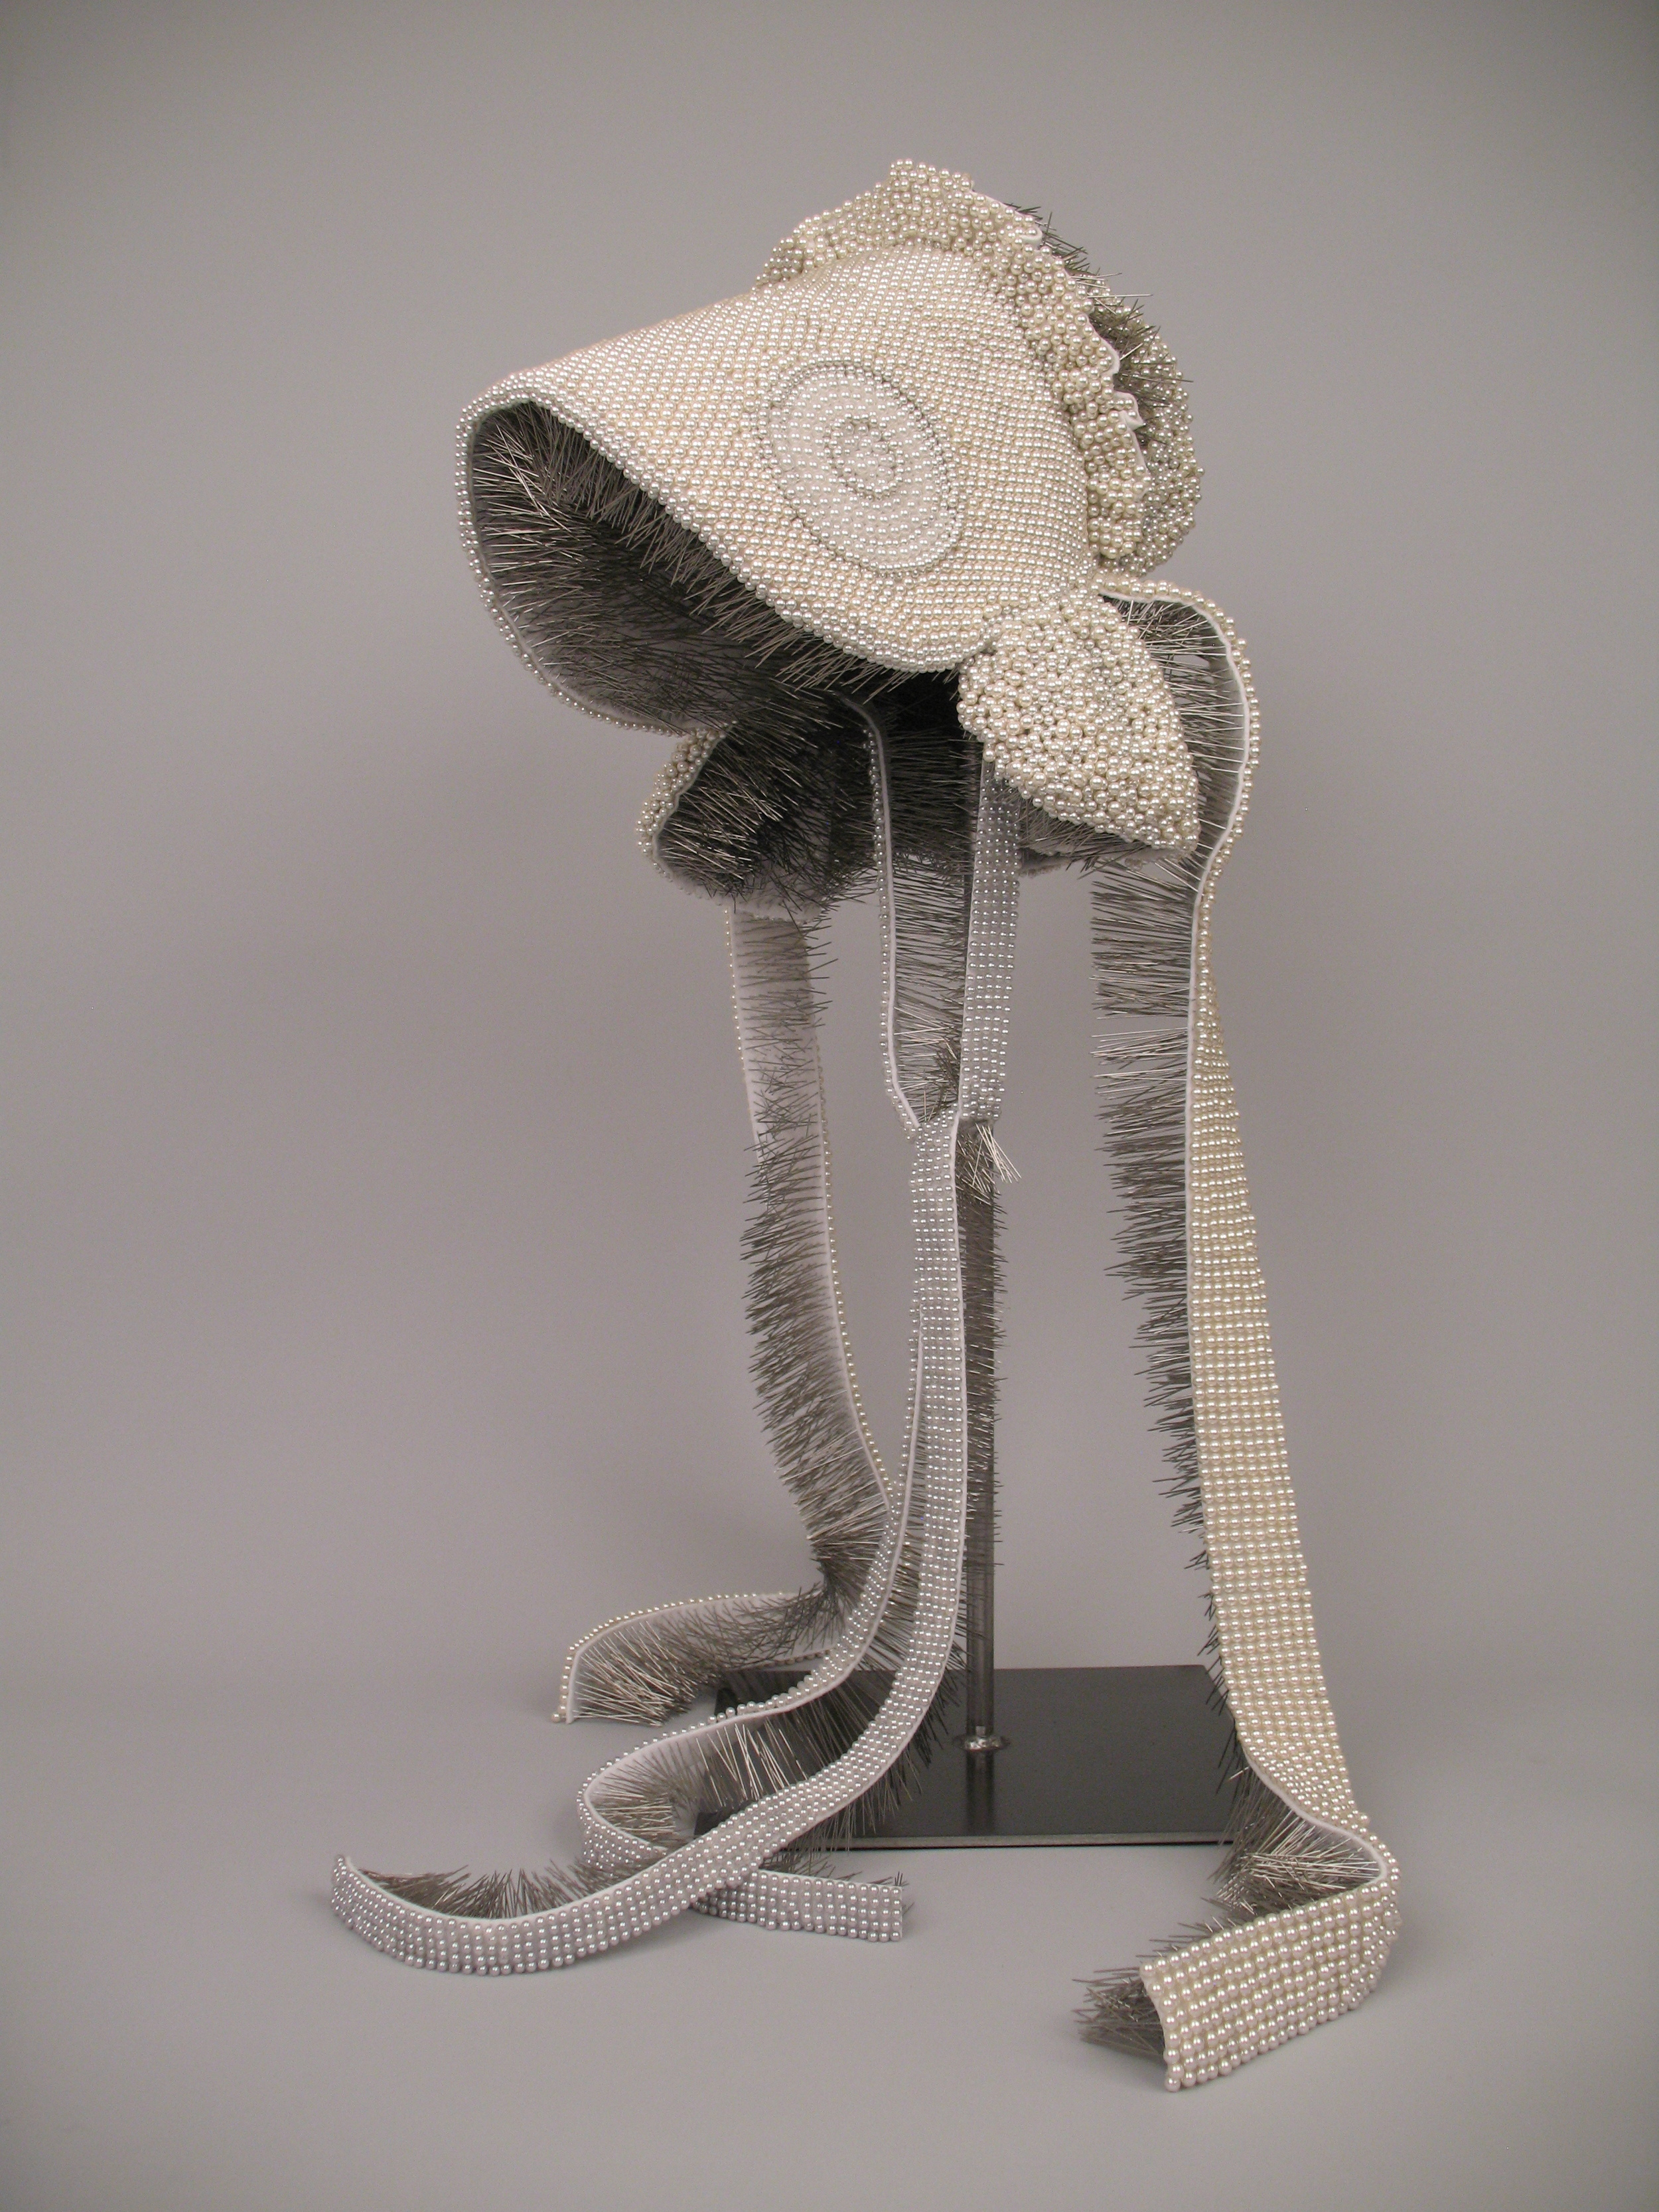 """Seer Bonnet XIII (Mary)  20,269 pearl corsage pins, fabric, steel, 28.5"""" x 12"""" x 15"""", 2010"""